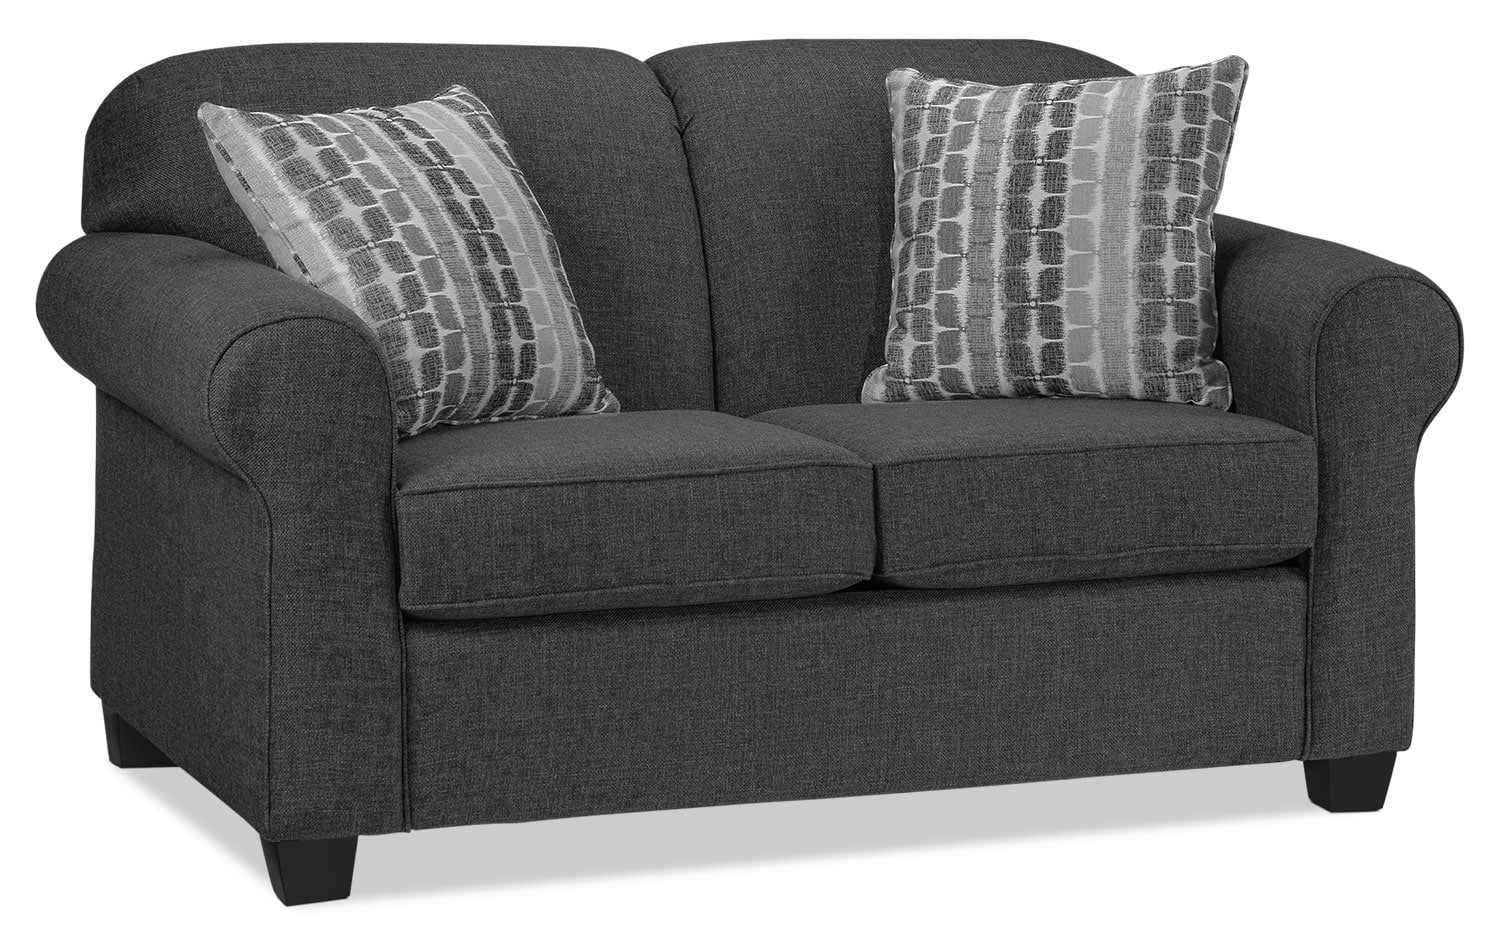 Aristotle Loveseat - Graphite